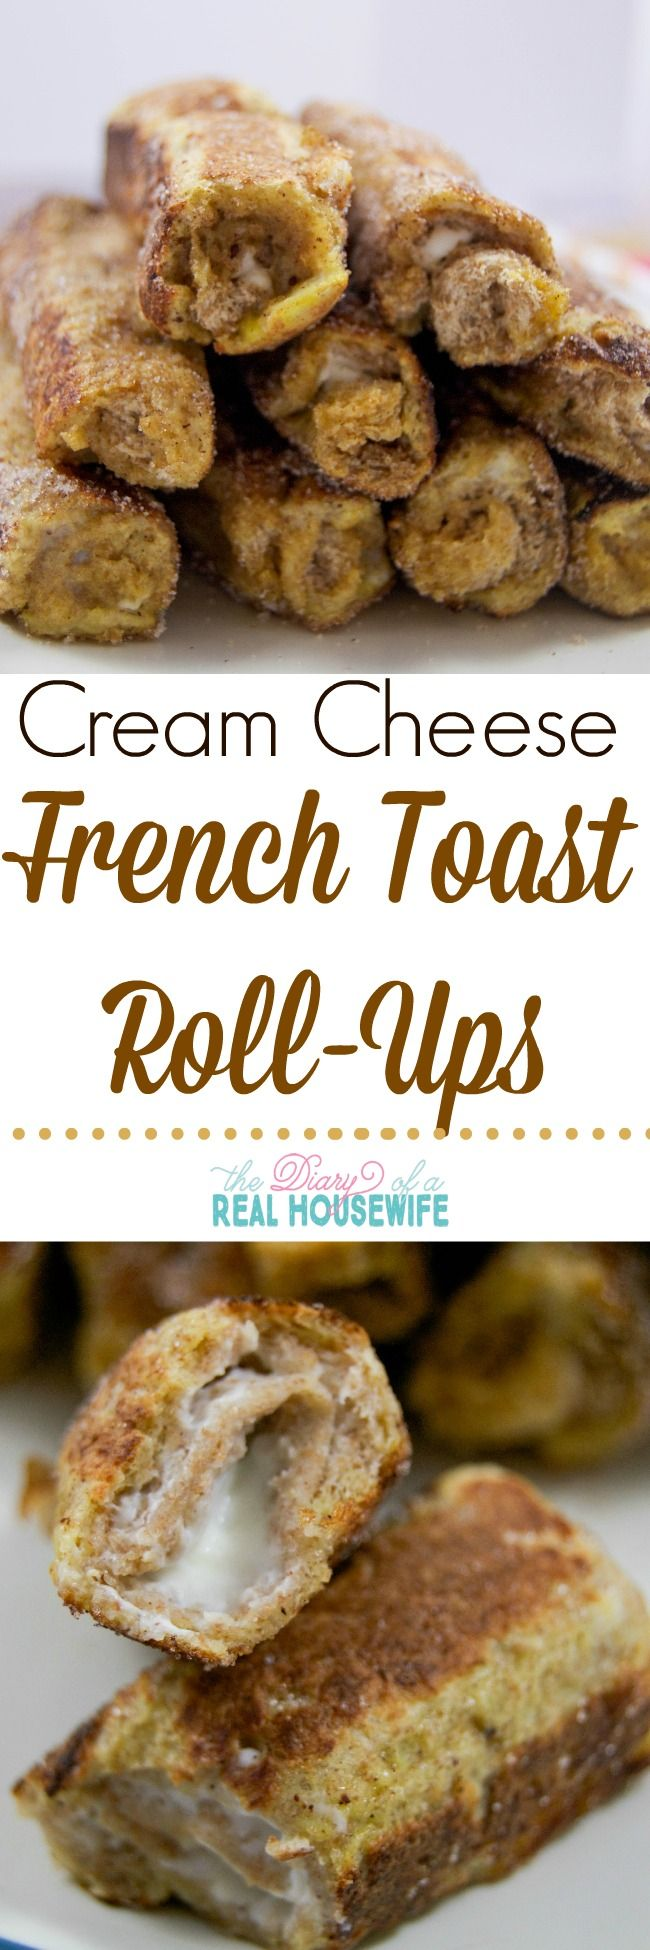 Cream Cheese French Toast Roll-ups. Such a great breakfast idea.